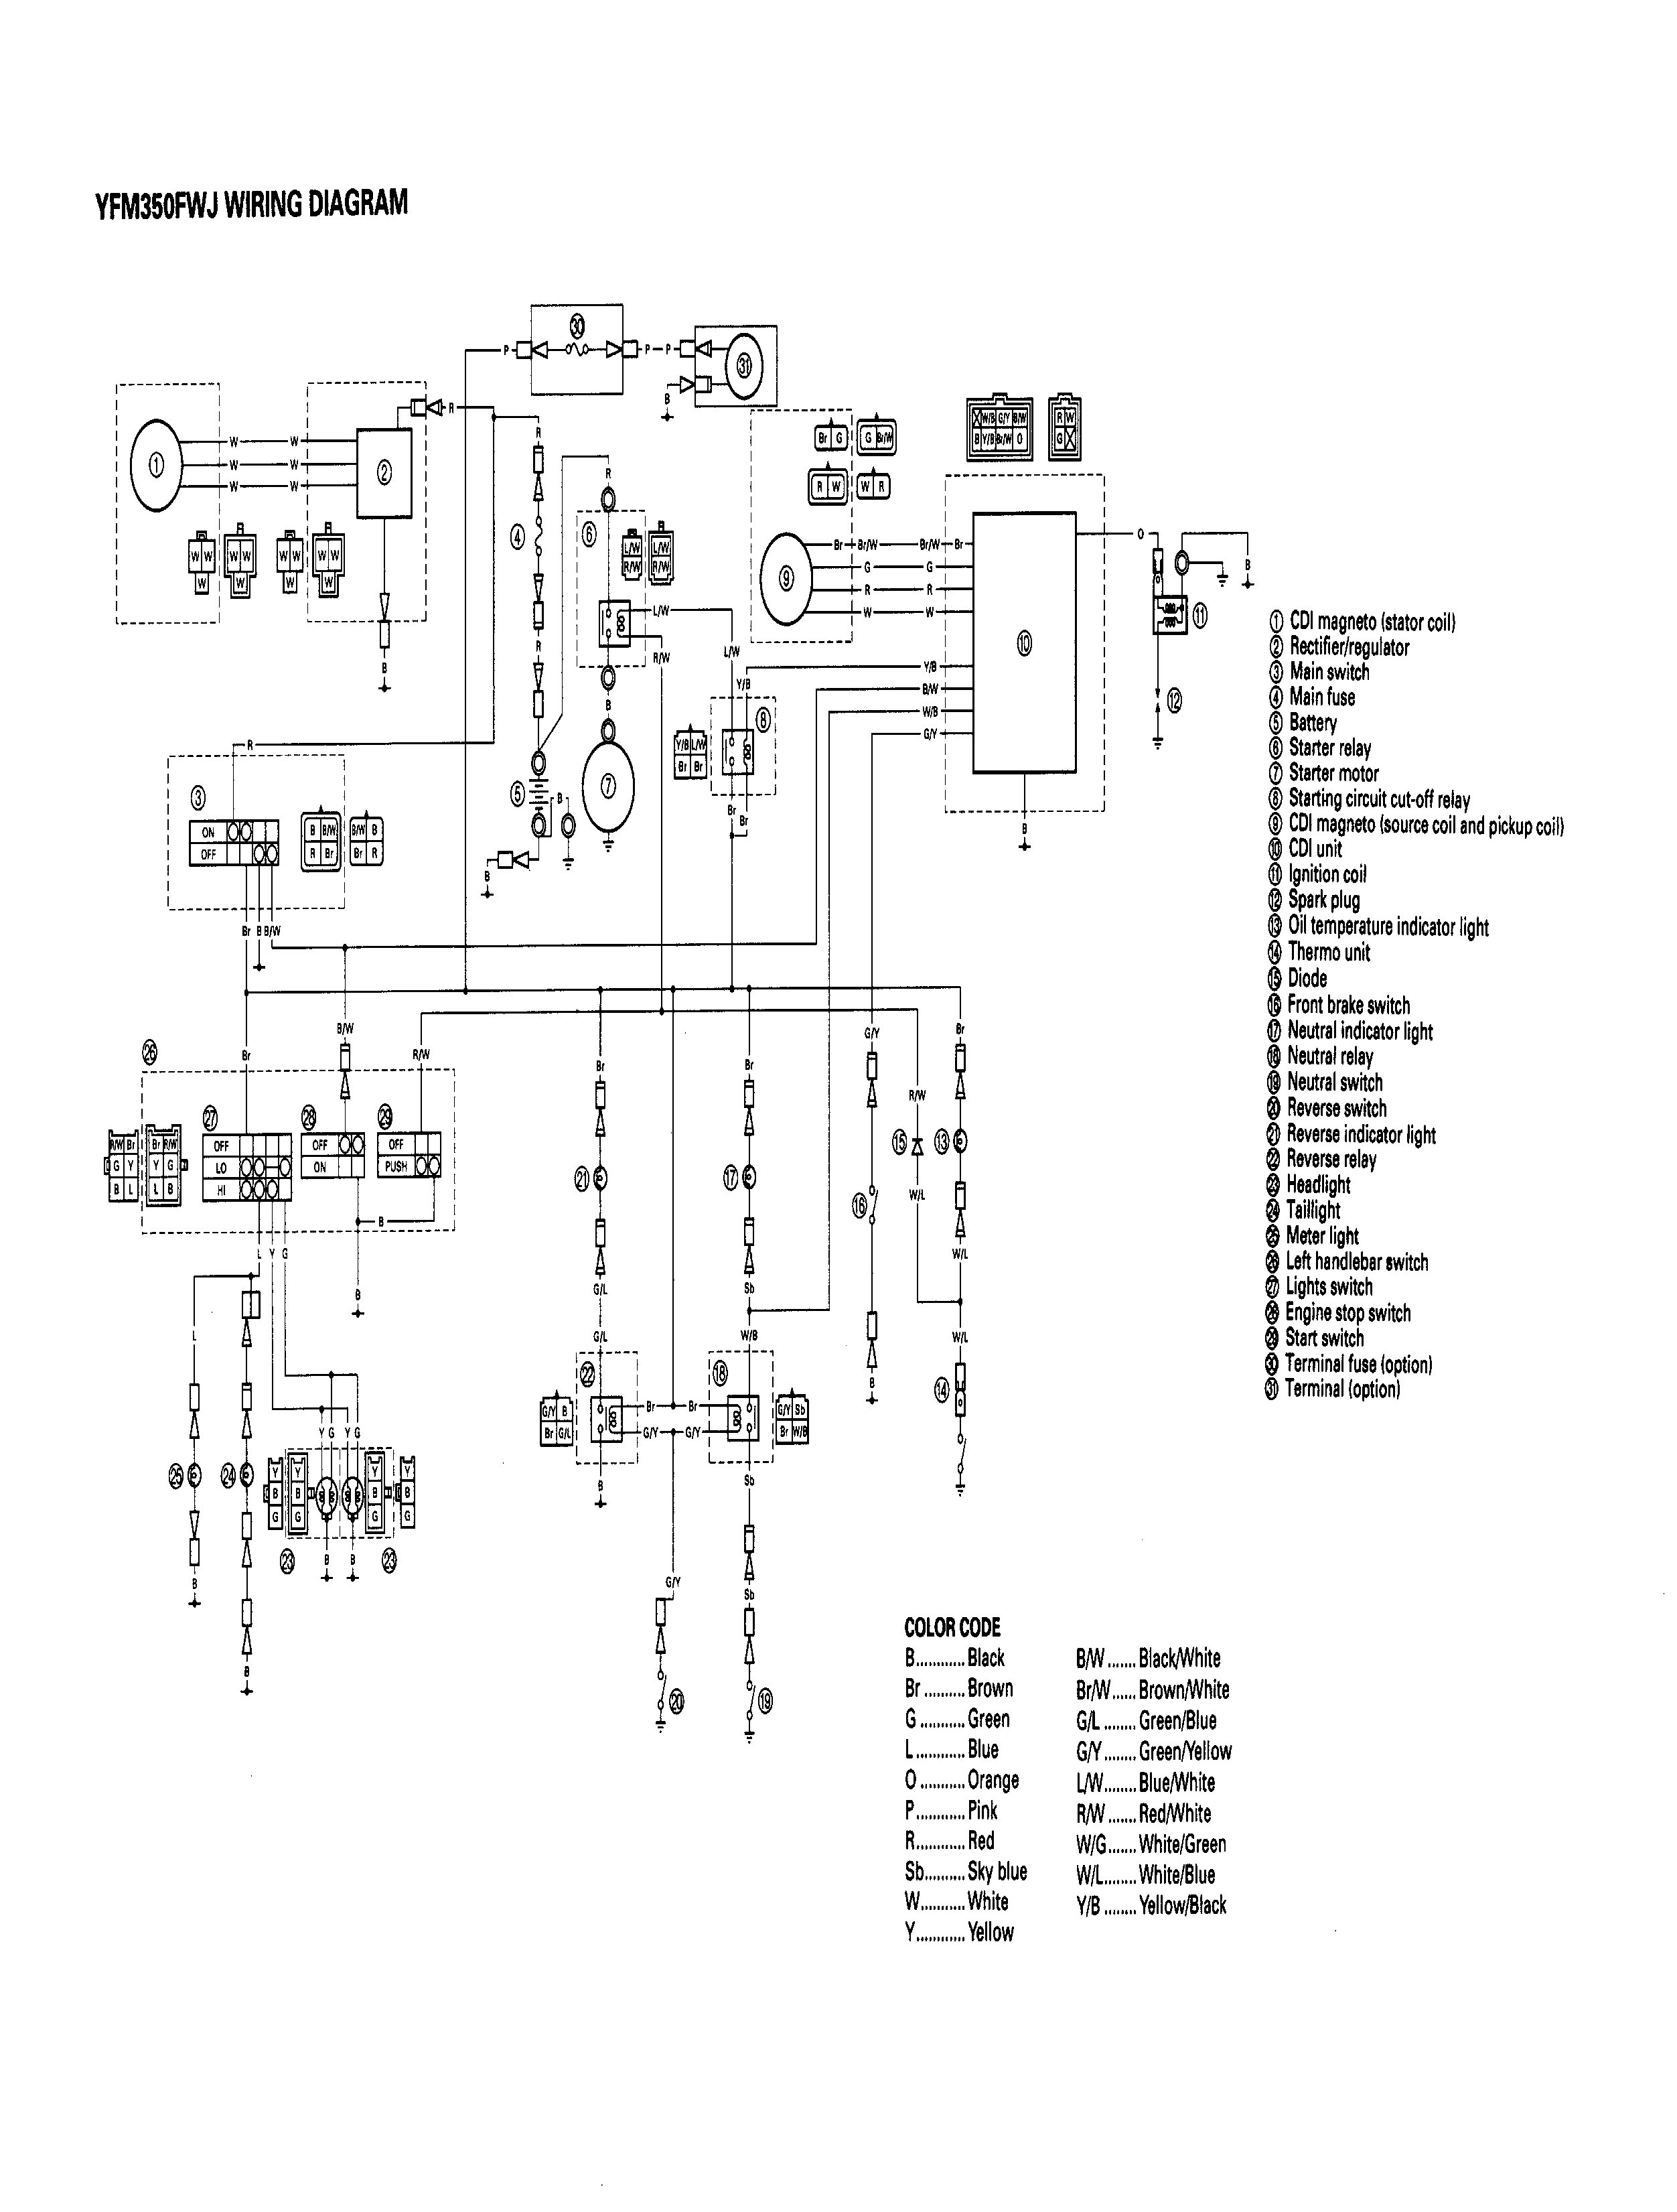 Yamaha Grizzly 350 Wiring Diagram Yamaha Wiring Diagram